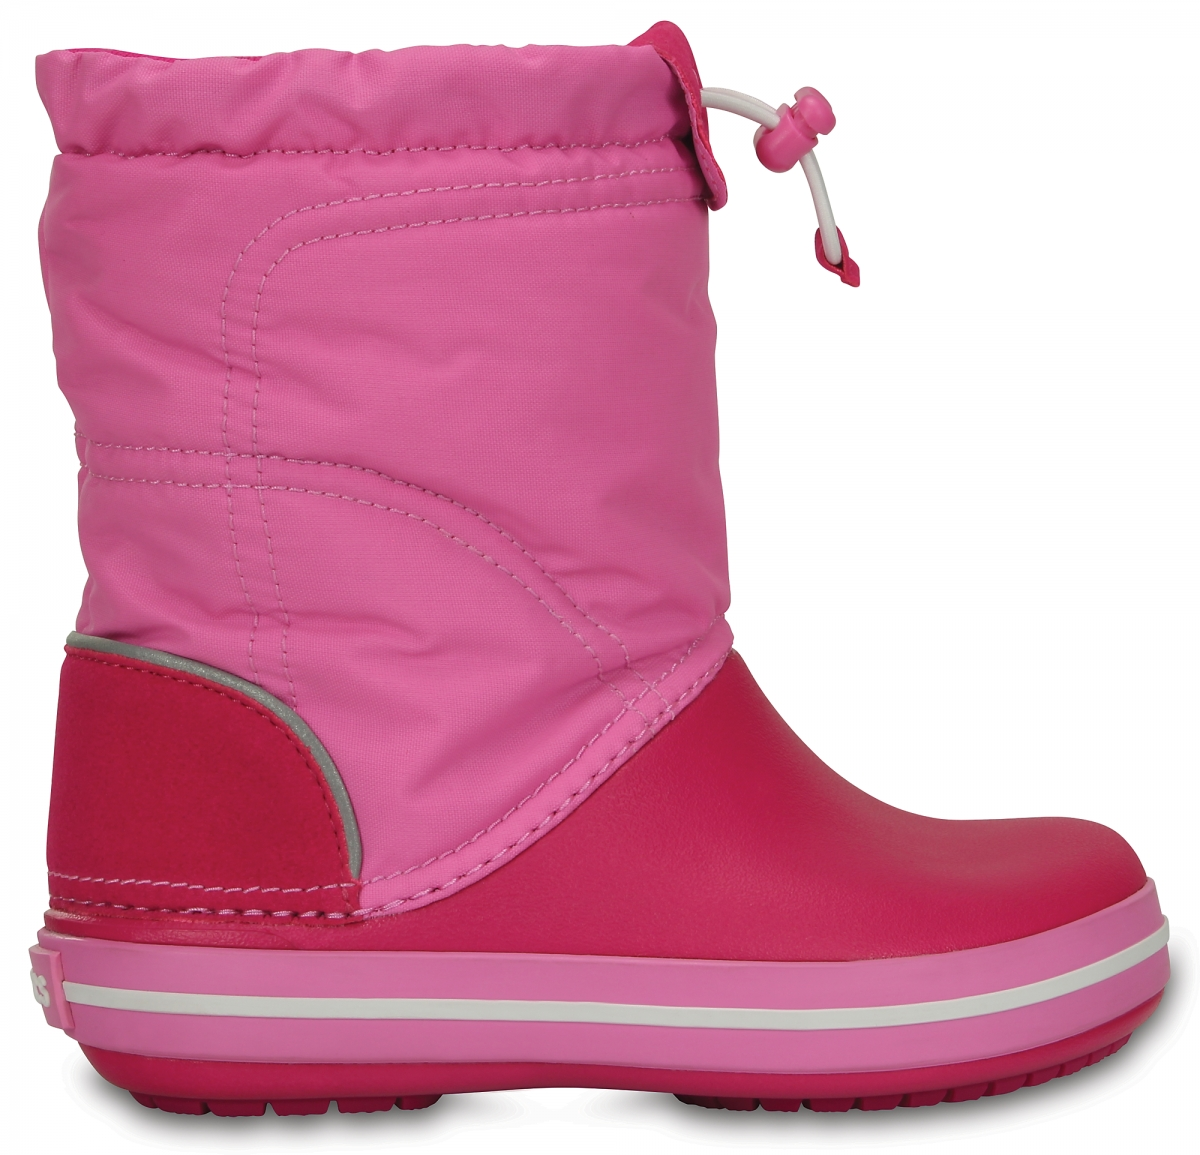 Crocs Crocband LodgePoint Boot Kids - Candy Pink/Party Pink, C11 (28-29)